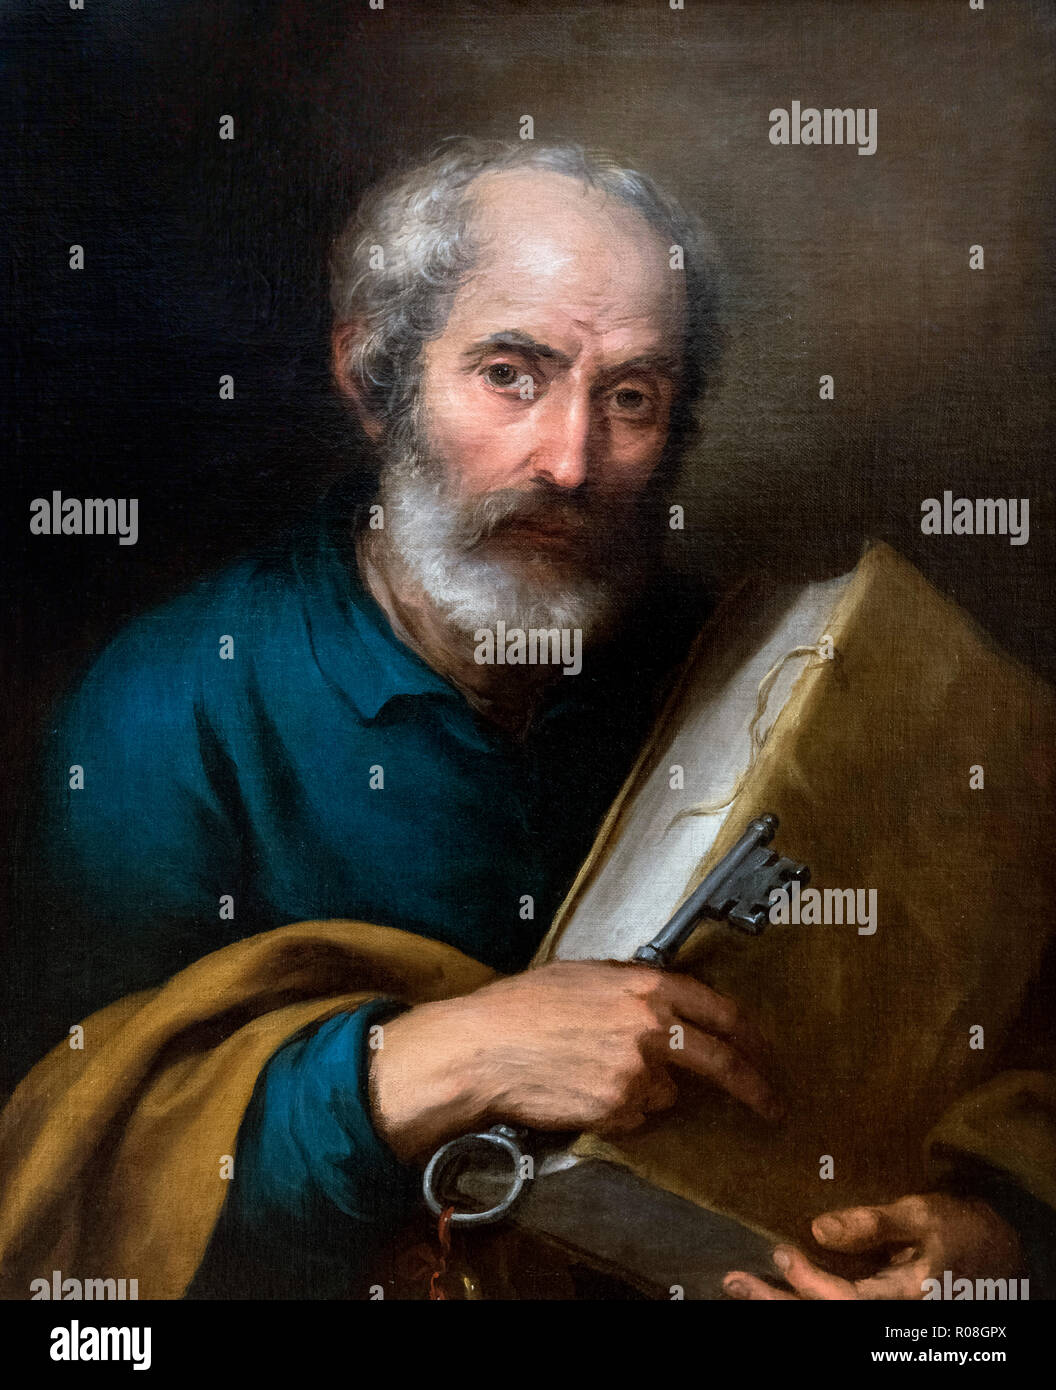 St Peter by Bartolomé-Esteban Murillo (1617-1682), oil on canvas, c.1670 - Stock Image